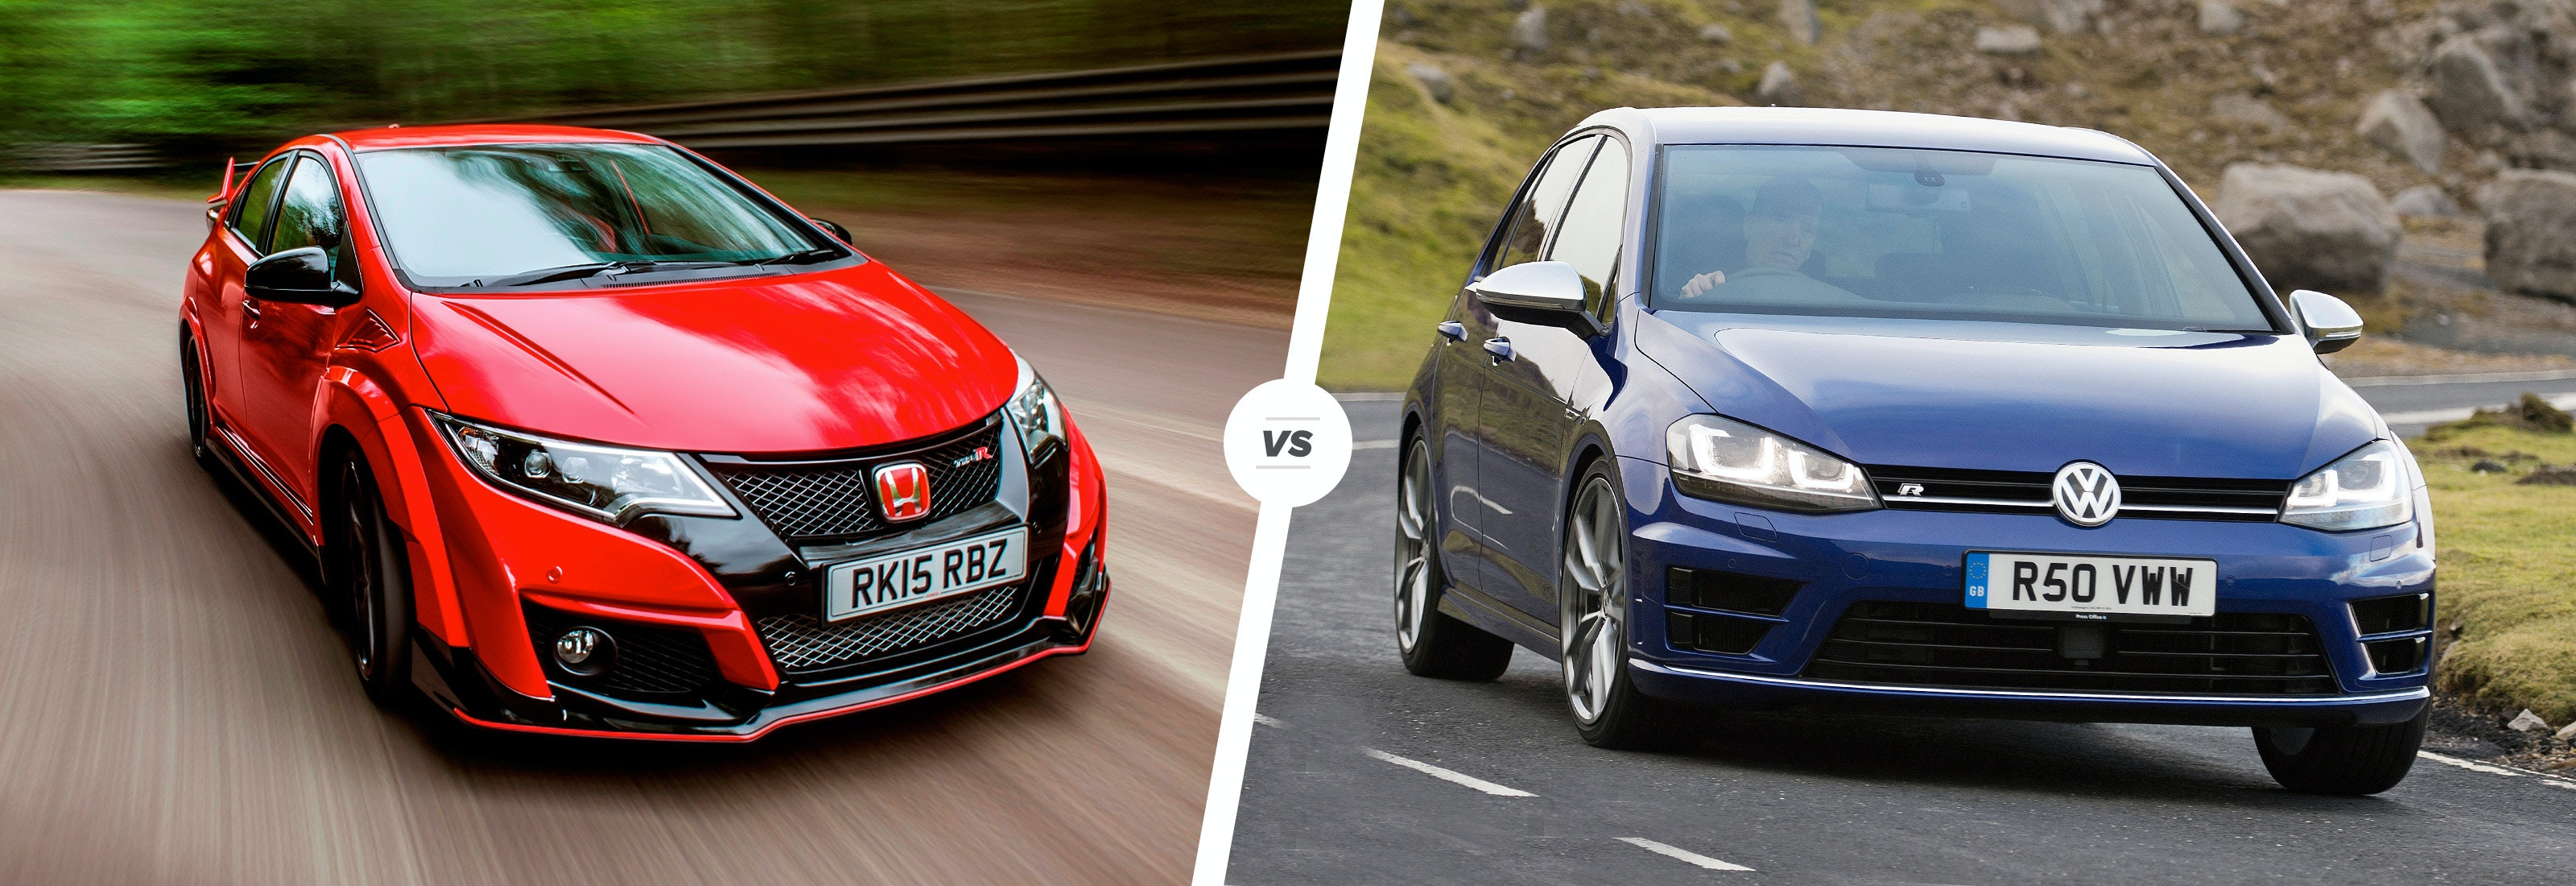 honda civic type r vs vw golf r: fast face-off | carwow